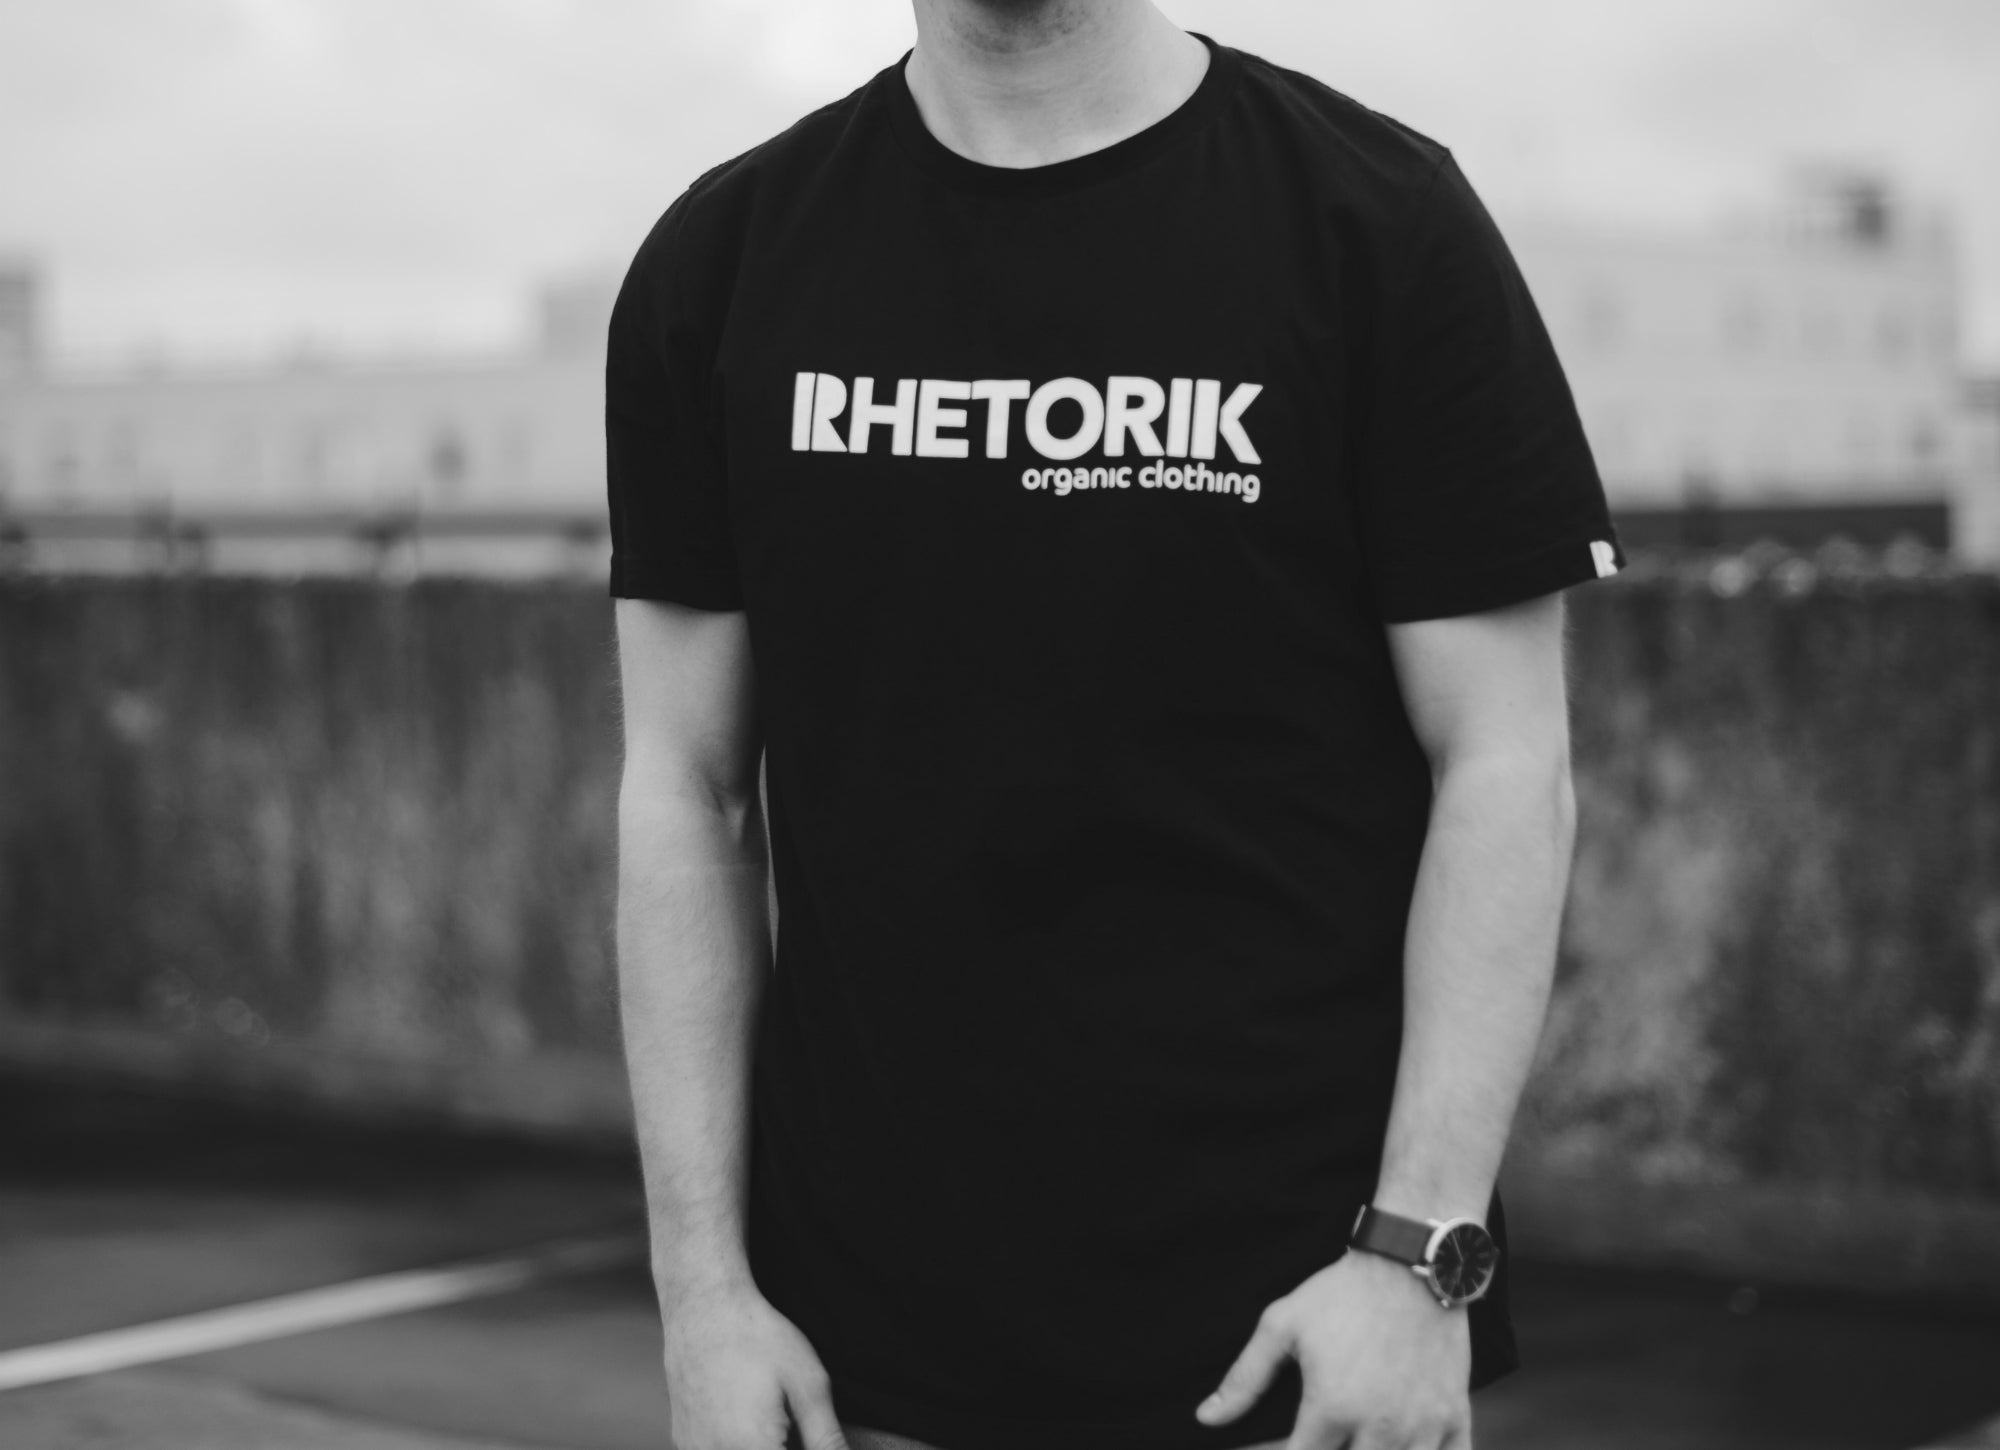 Black t-shirt with Rhetorik organic clothing printed worn by male model, cropped at neck.